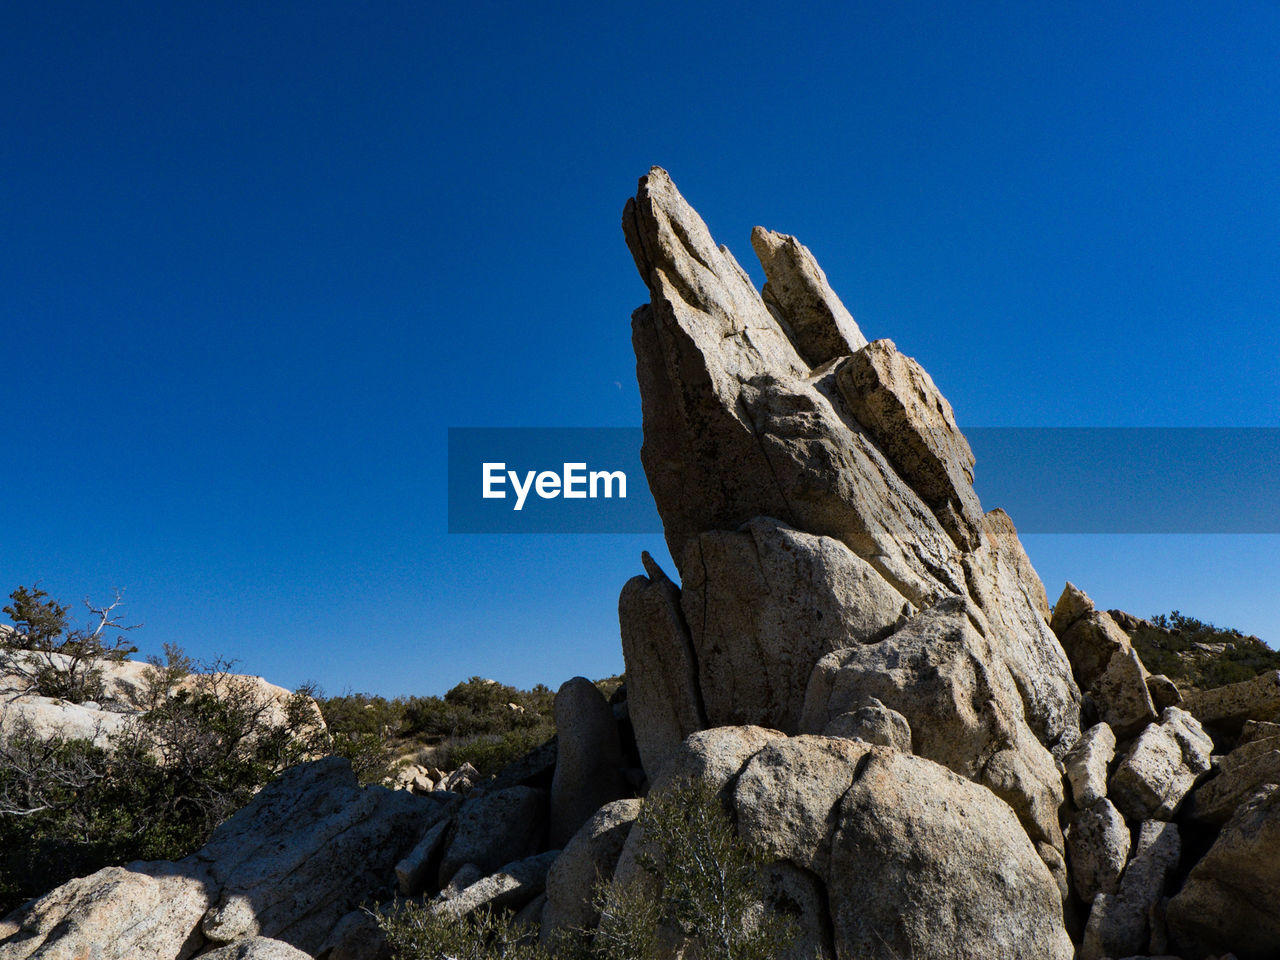 rock, solid, rock - object, sky, blue, clear sky, rock formation, nature, low angle view, copy space, day, tranquility, no people, sunlight, beauty in nature, tranquil scene, rough, scenics - nature, mountain, textured, outdoors, eroded, mountain peak, arid climate